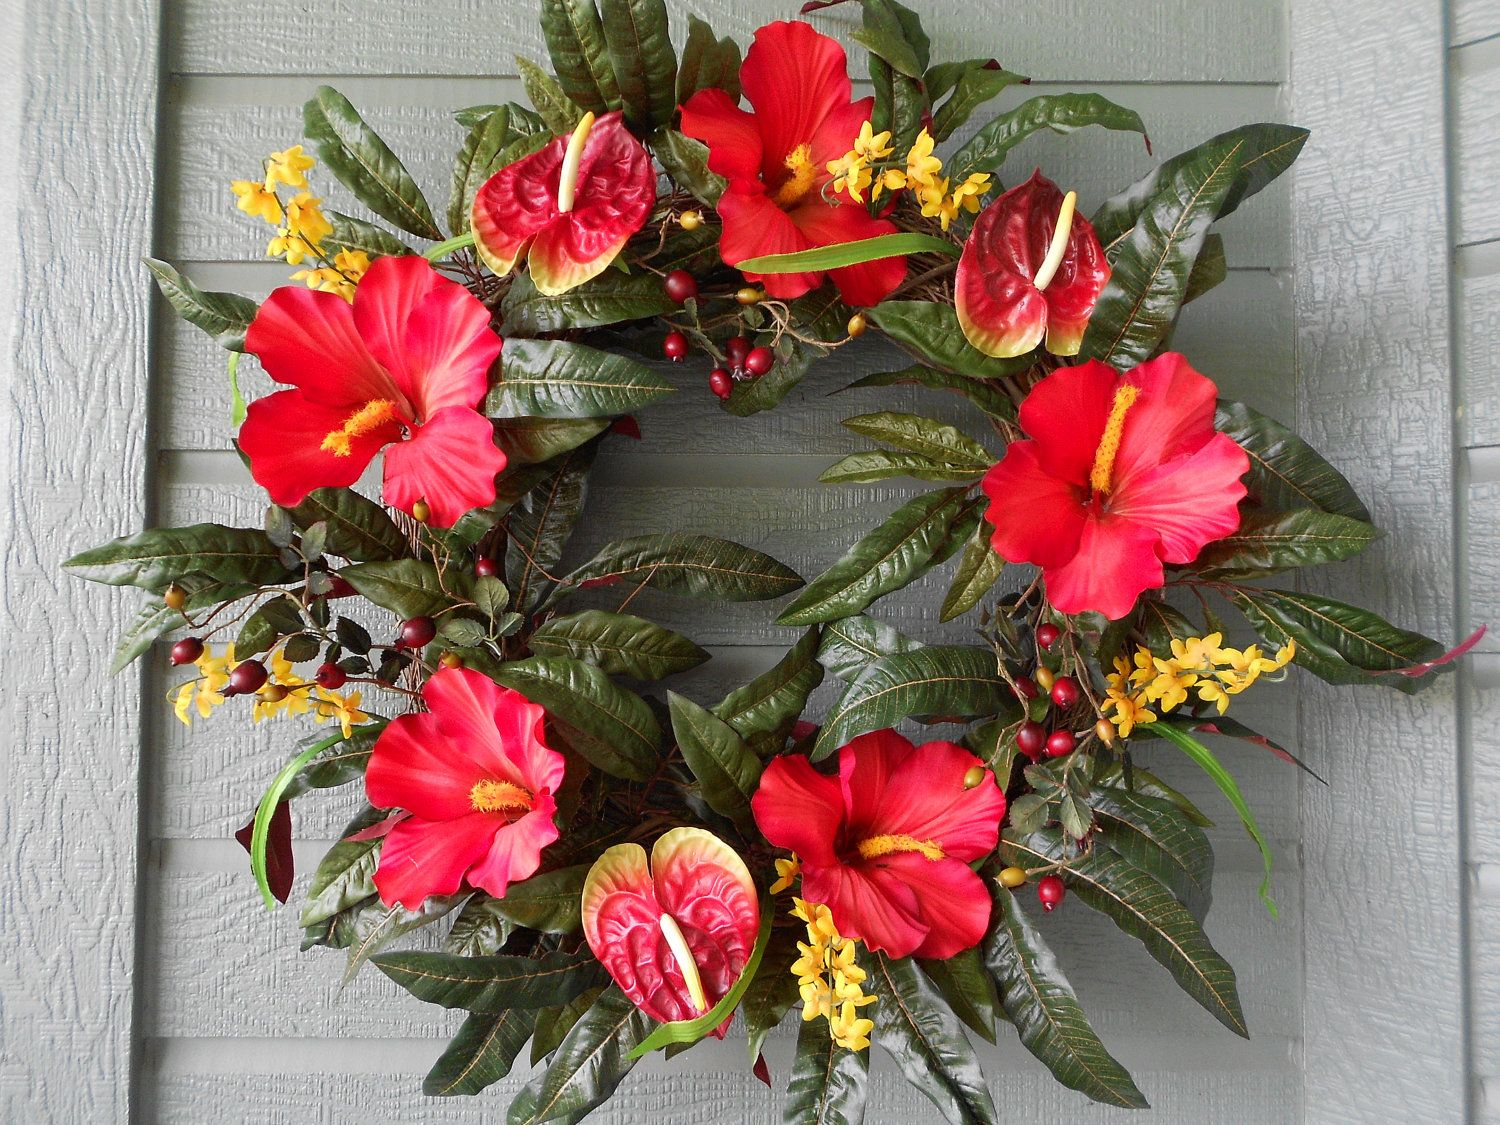 Great Idea For A Luah Party....Tropical Wreath In Bright